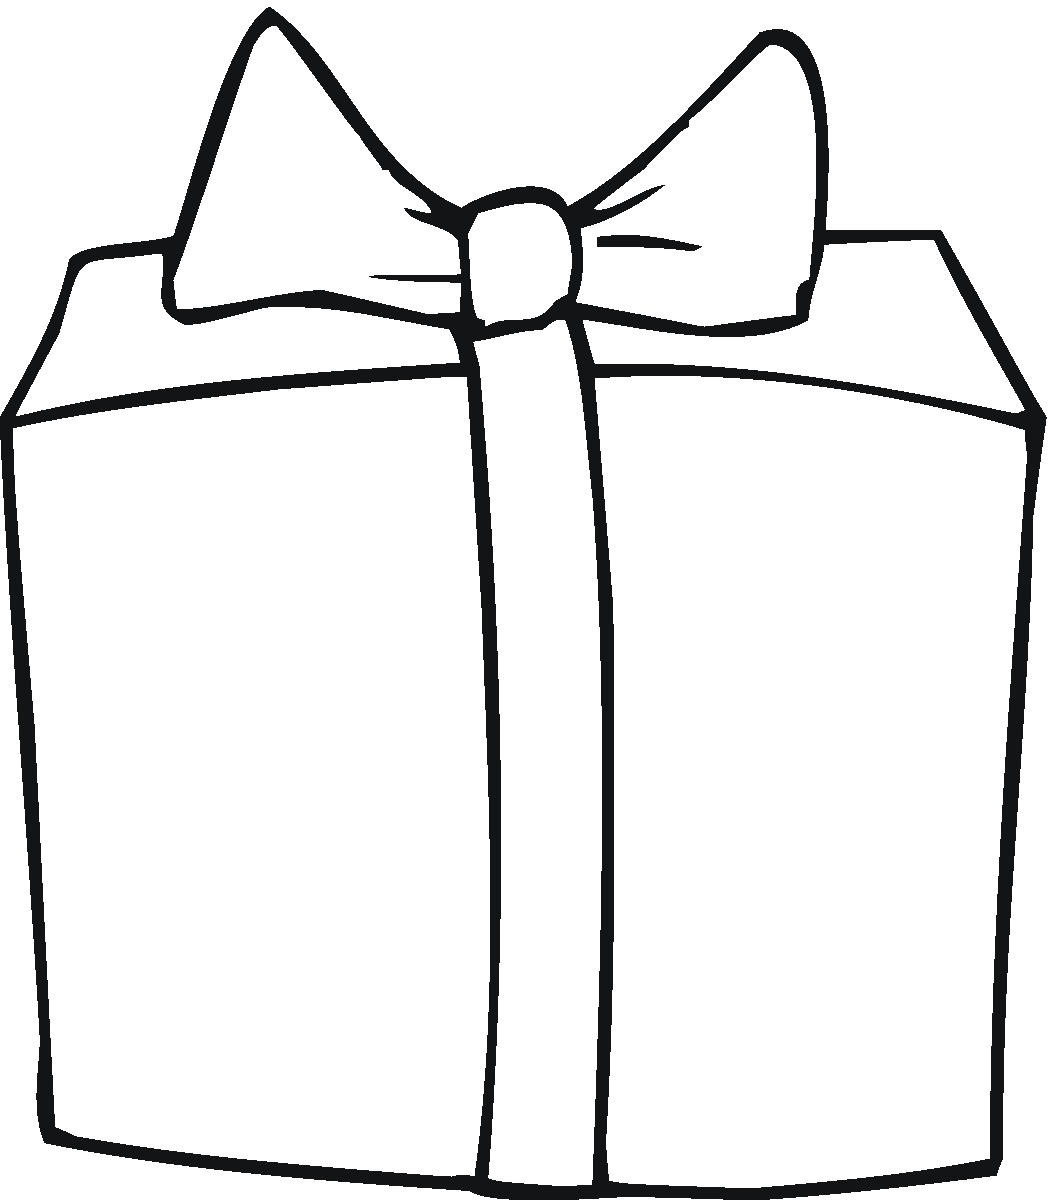 Free A Gift Cliparts, Download Free Clip Art, Free Clip Art on.